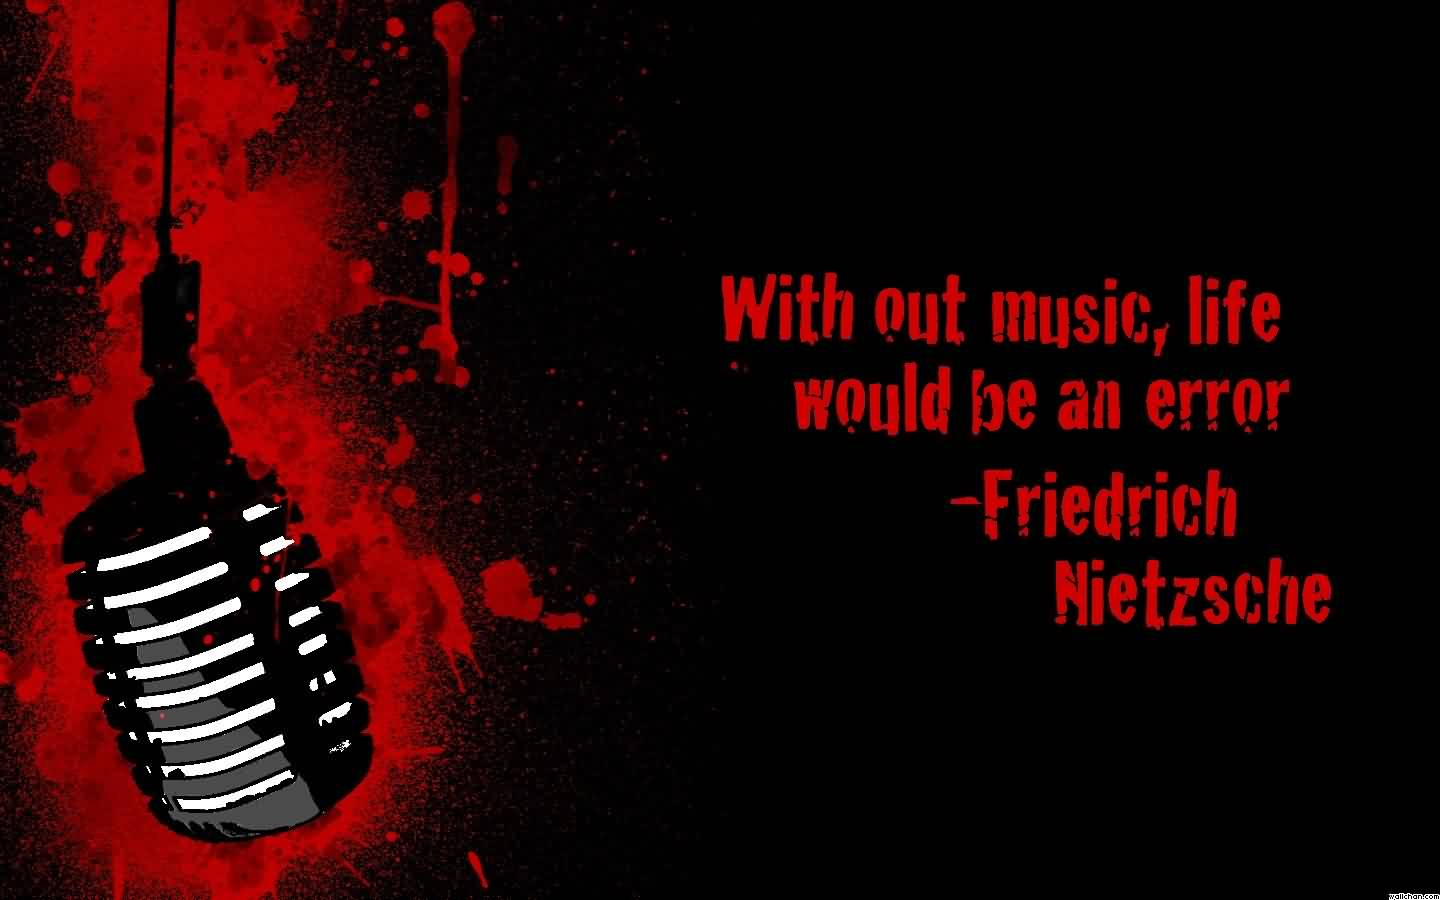 incredible-motivational-quote-about-life-without-music-life-would-be-an-error-friedrich-nietzsche.jpg